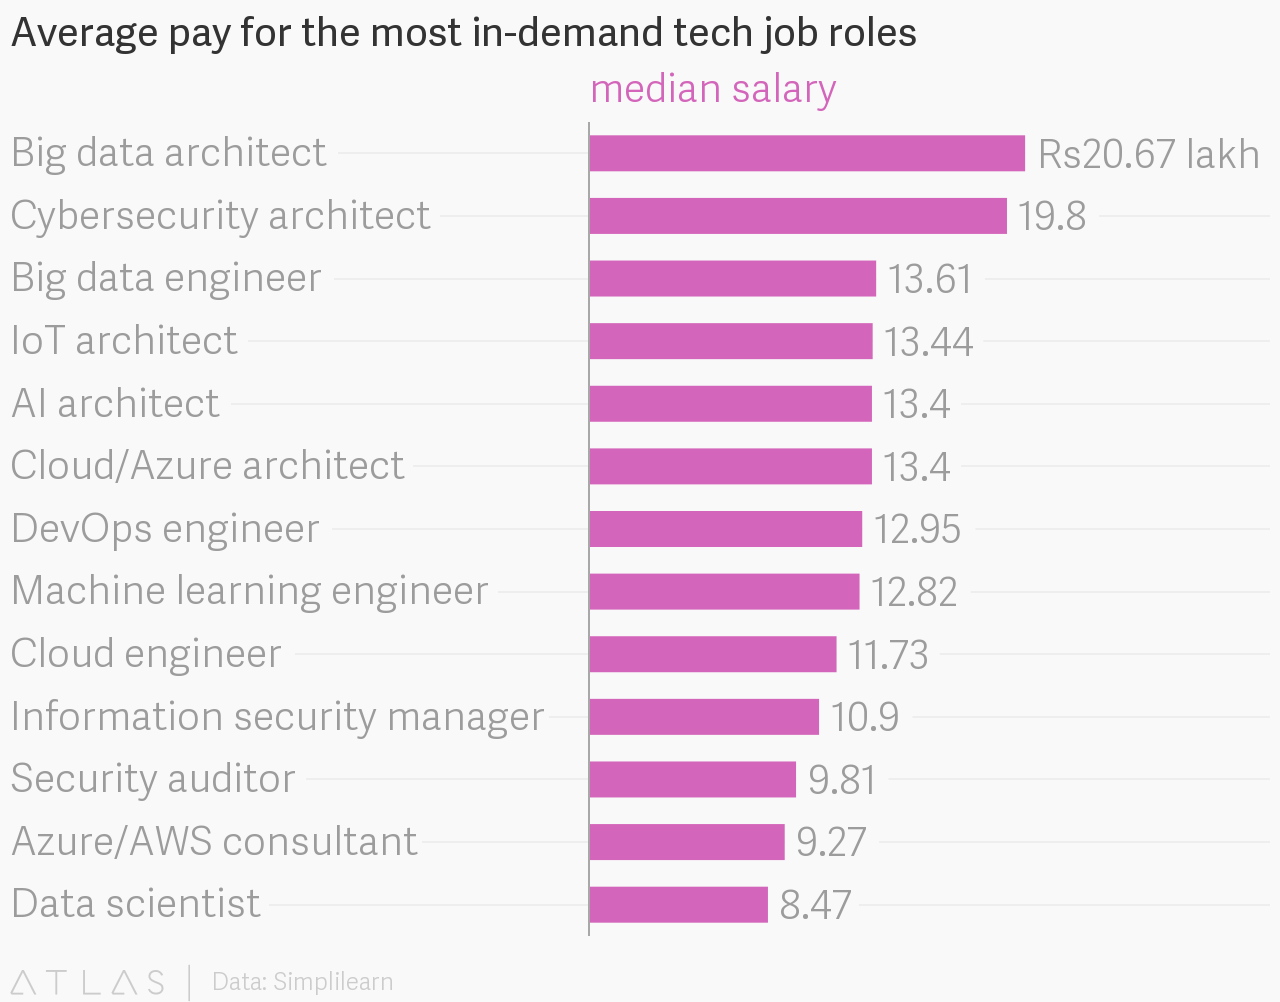 Average pay for the most in-demand tech job roles